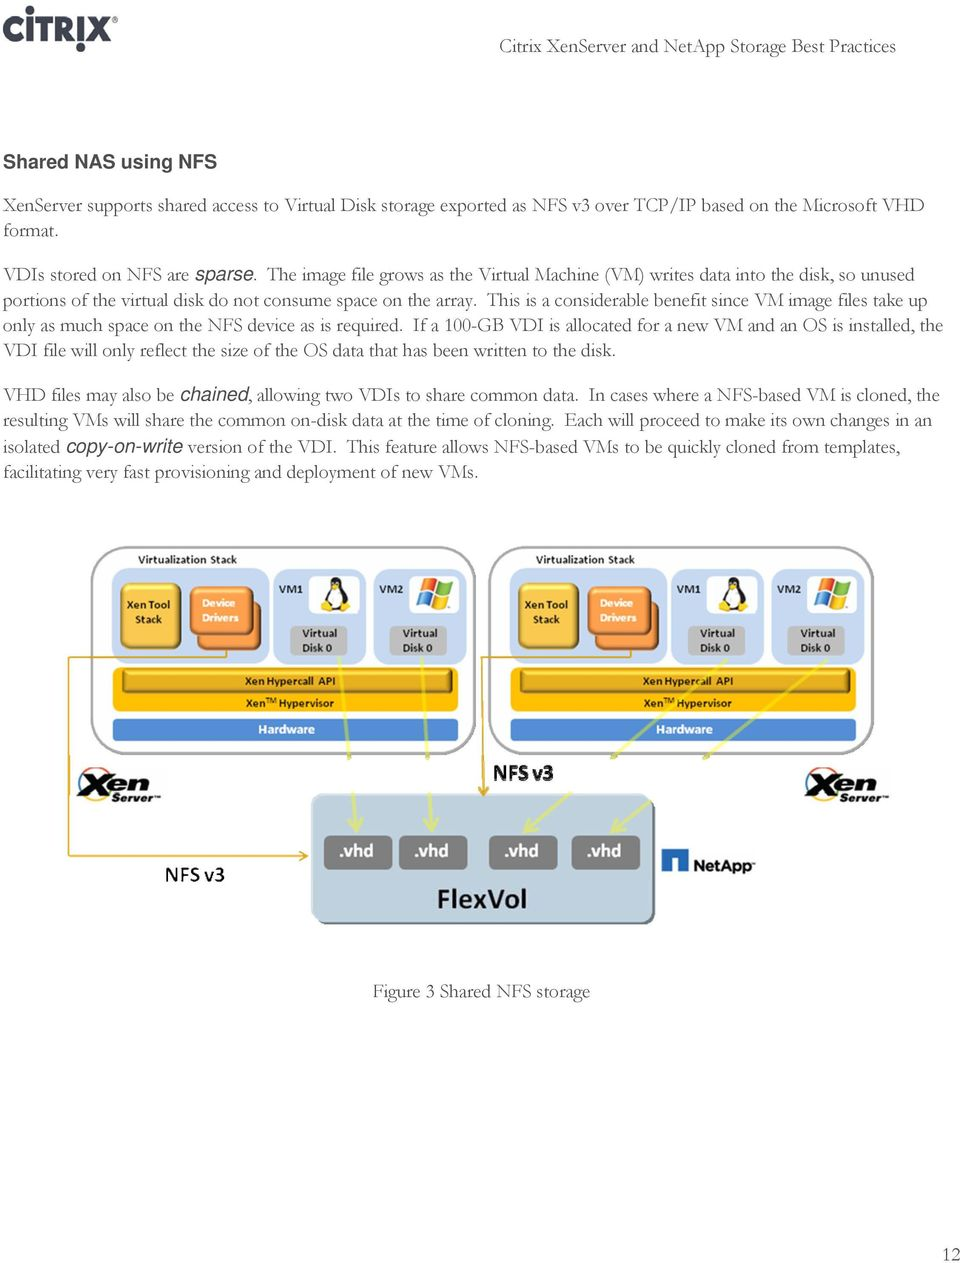 Citrix XenServer and NetApp Storage Best Practices - PDF